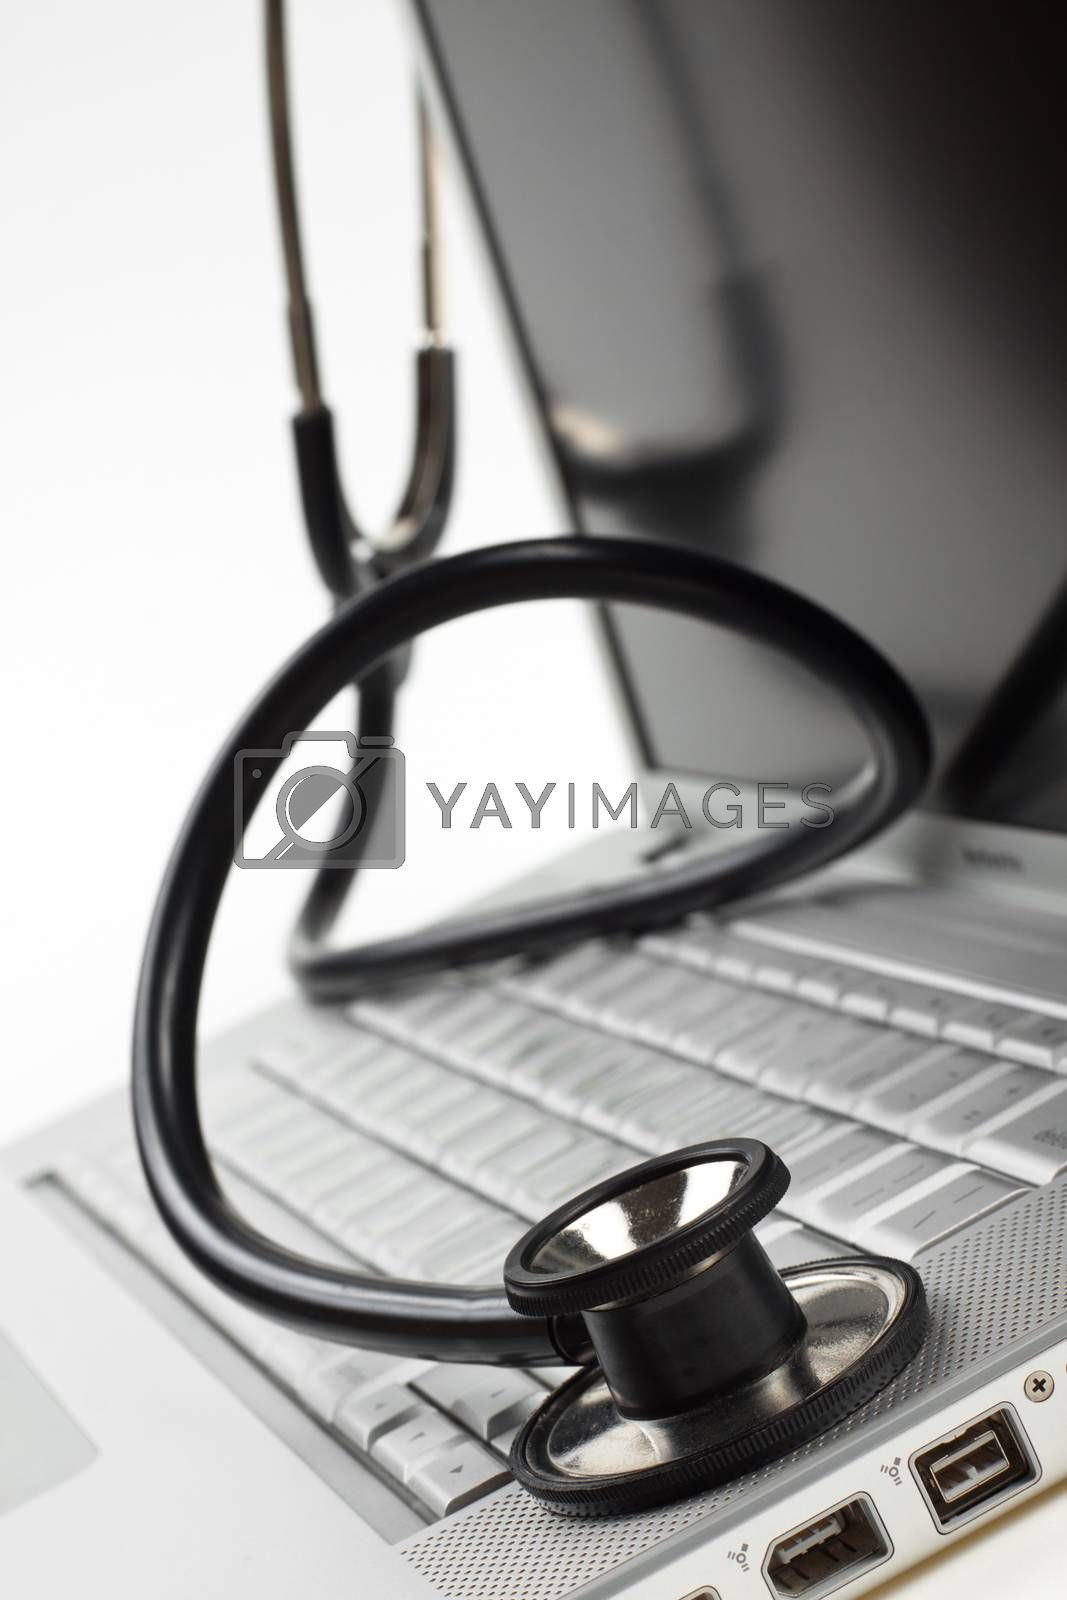 silver laptop diagnosis with black stethoscope crop closeup isolated on white background